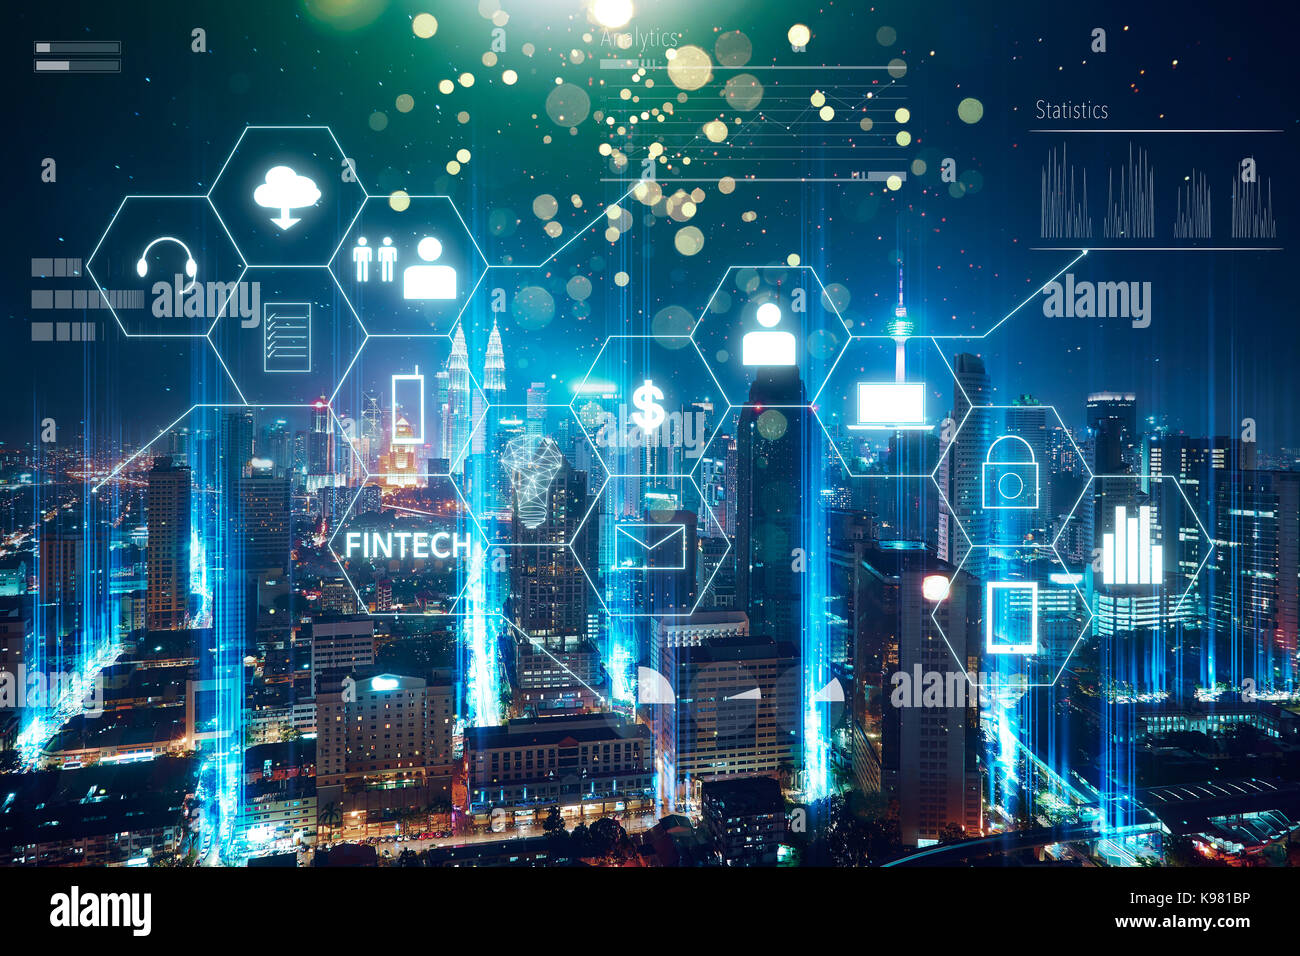 'Fintech' word on digital virtual screen with futuristic city skyline. Hi-tech business concept . - Stock Image